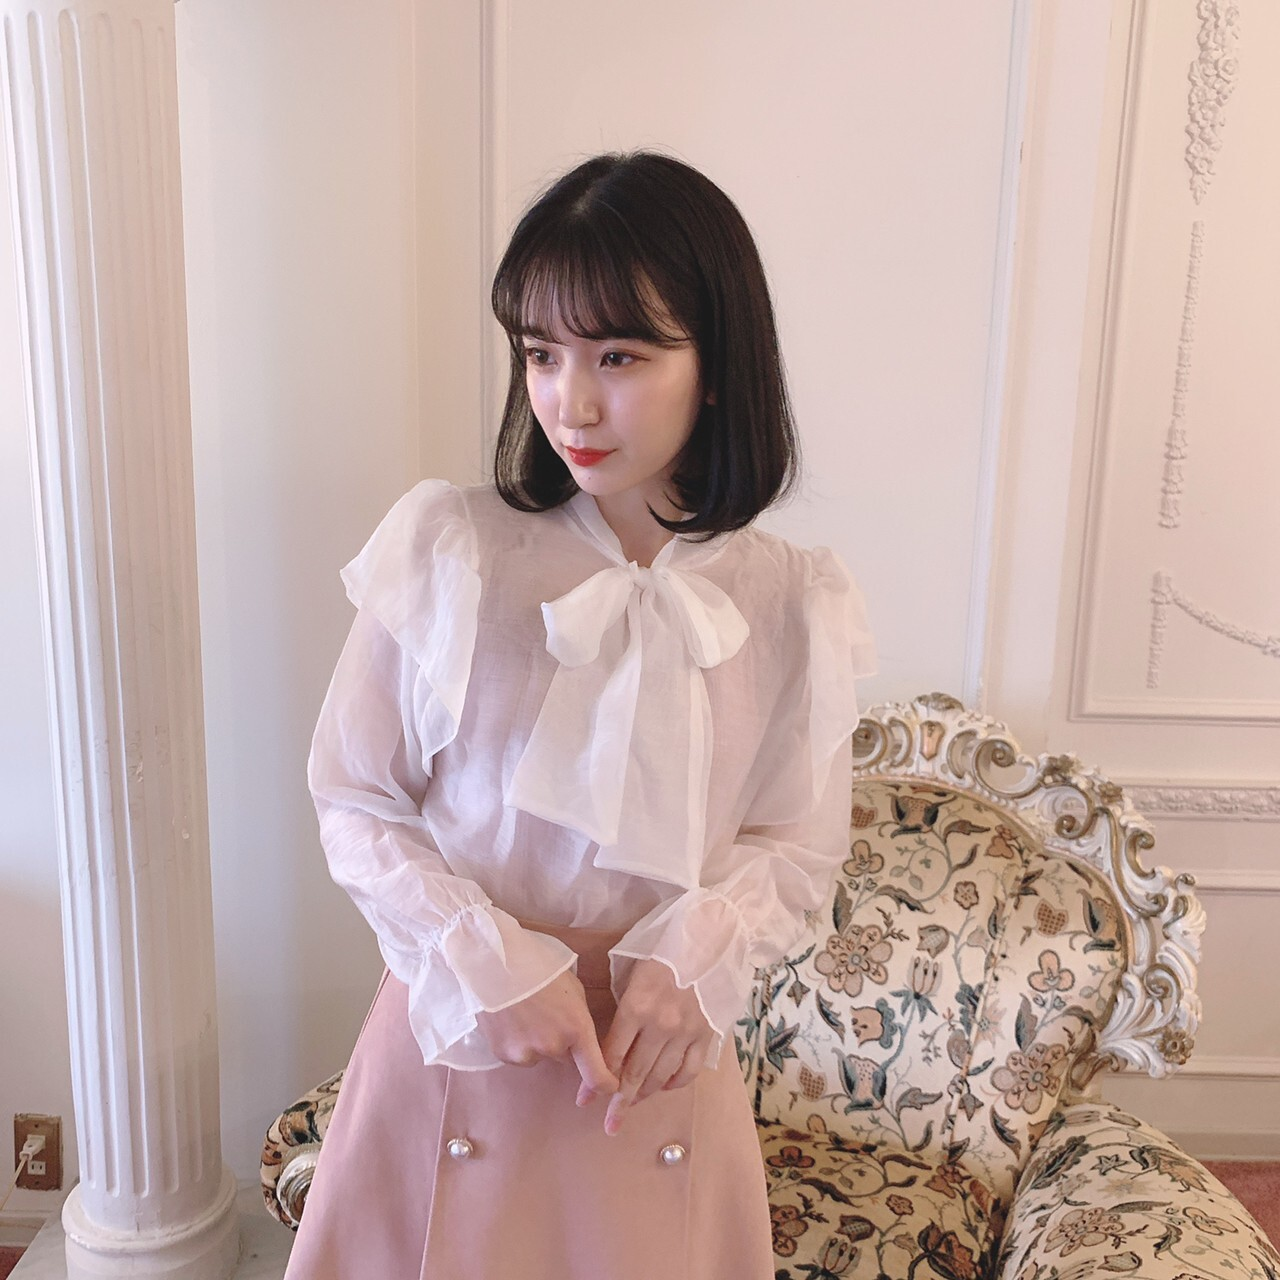 【meltie】ribbon tie sheer blouse